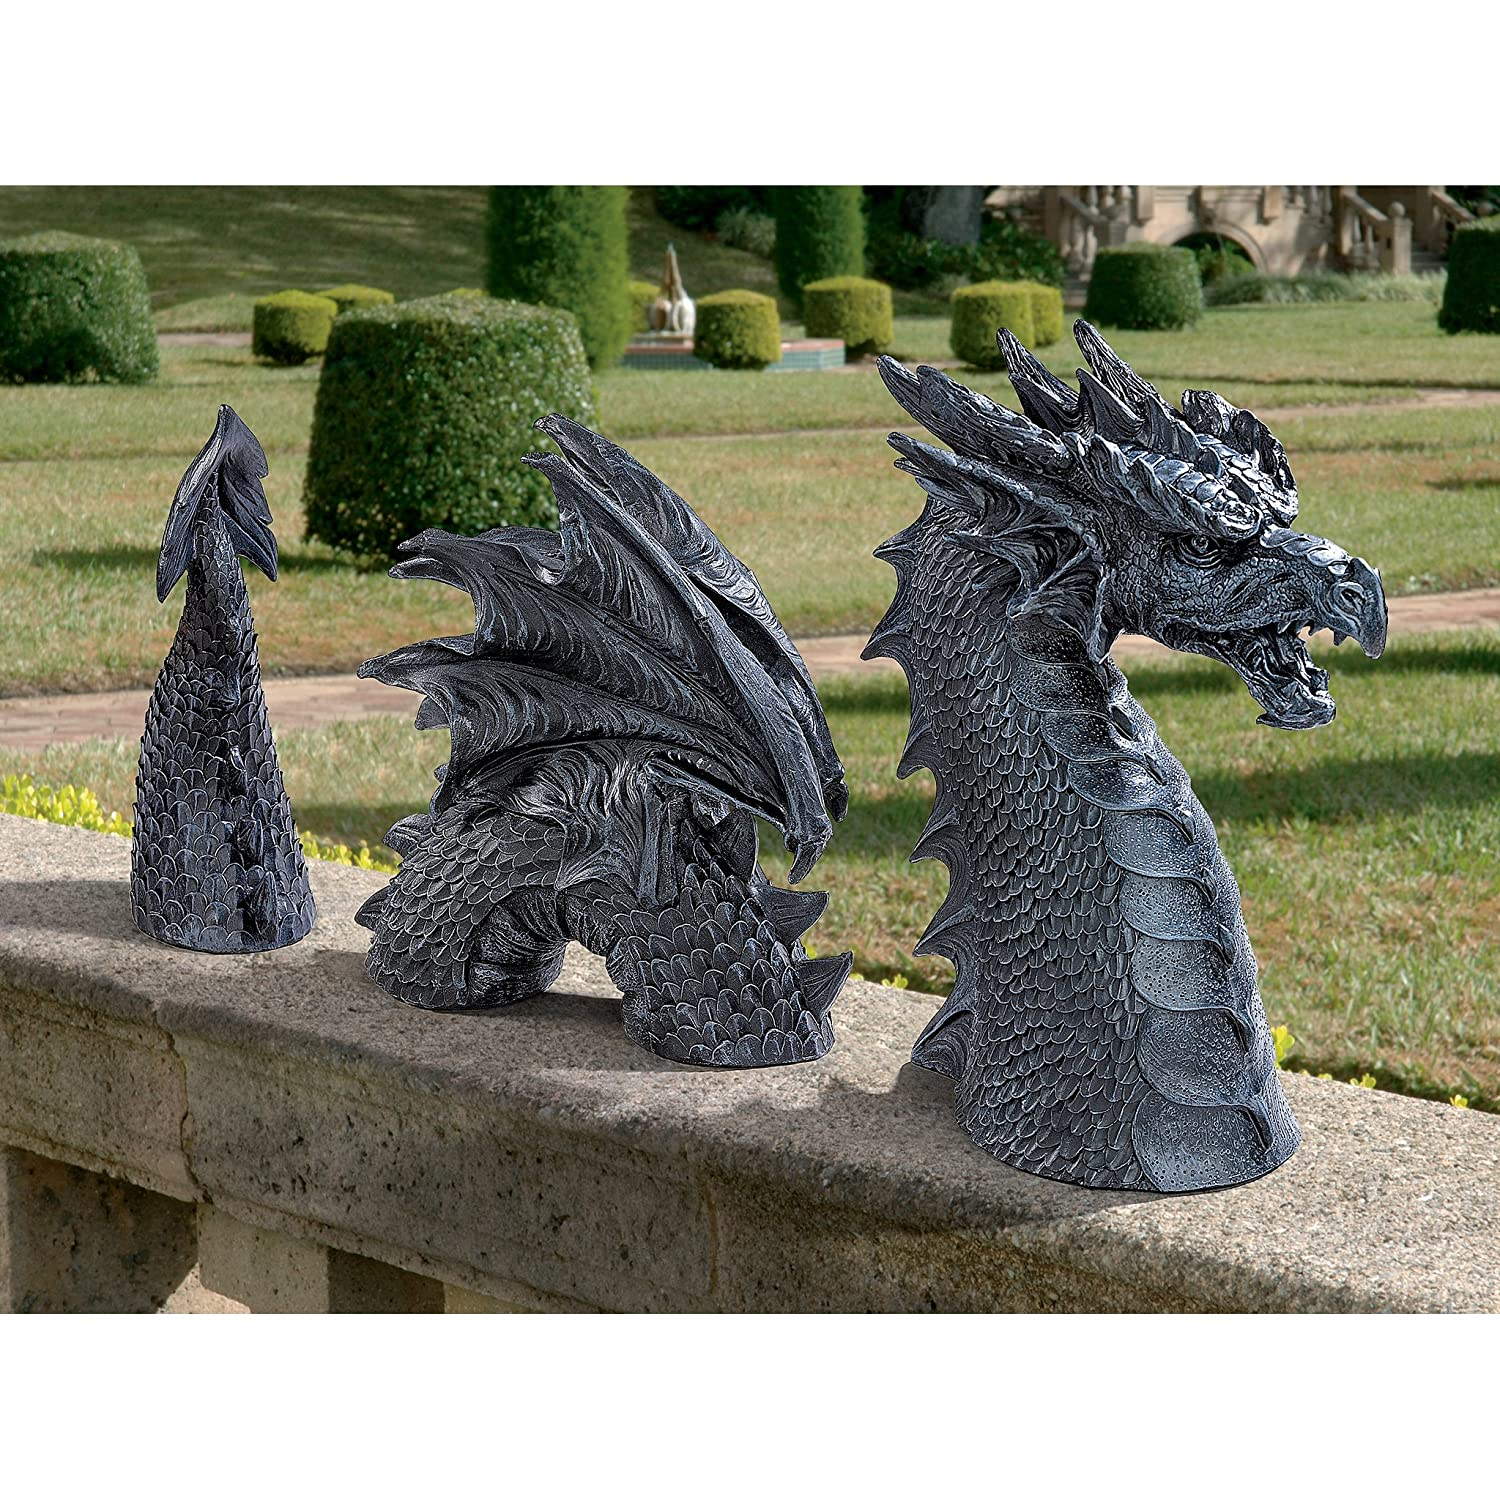 High Quality Amazon.com : Design Toscano The Dragon Of Falkenberg Castle Moat Lawn Statue  : Garden U0026 Outdoor